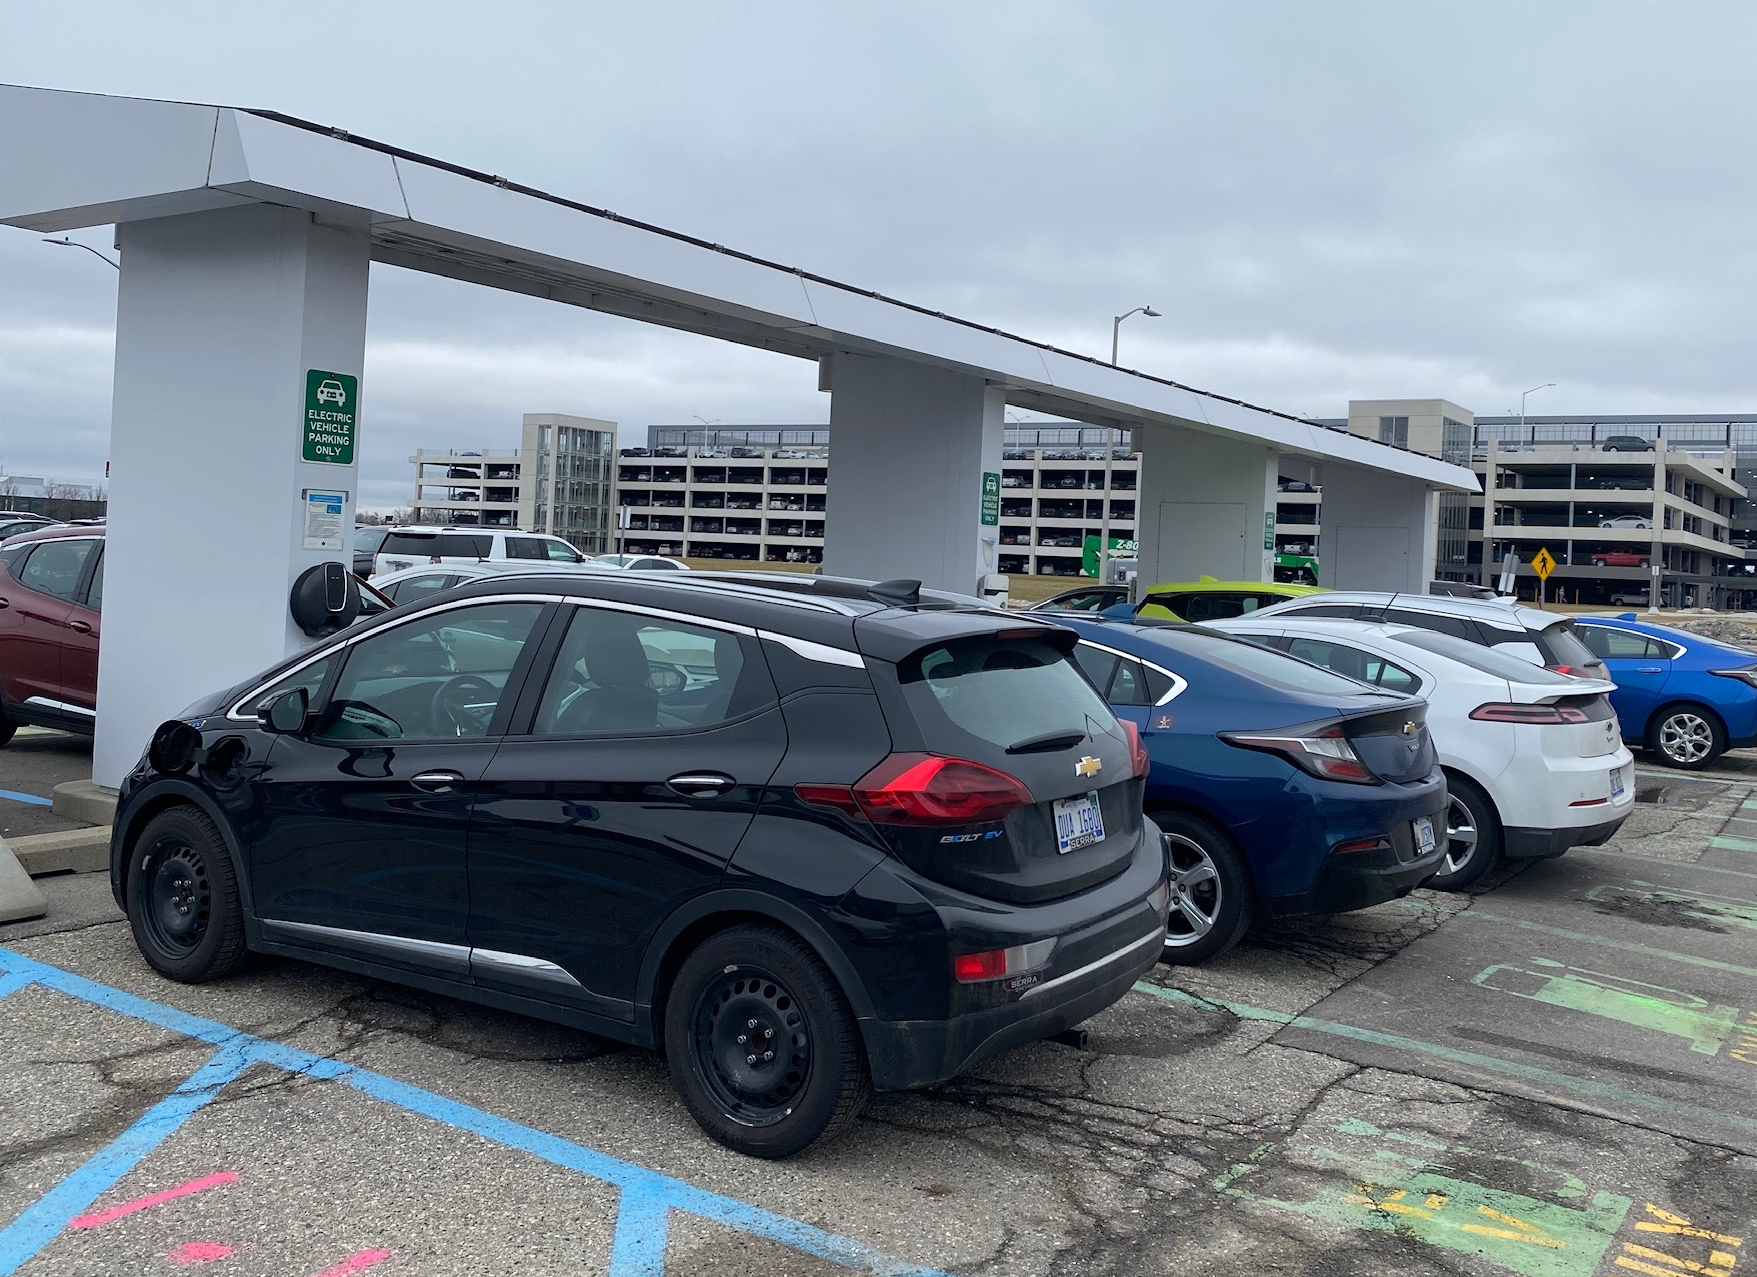 Breaking! Gm To Add 3,500 New Ev Charging Plugs At Company 2022 Chevrolet Bolt Ev Charger, Changes, Dimensions